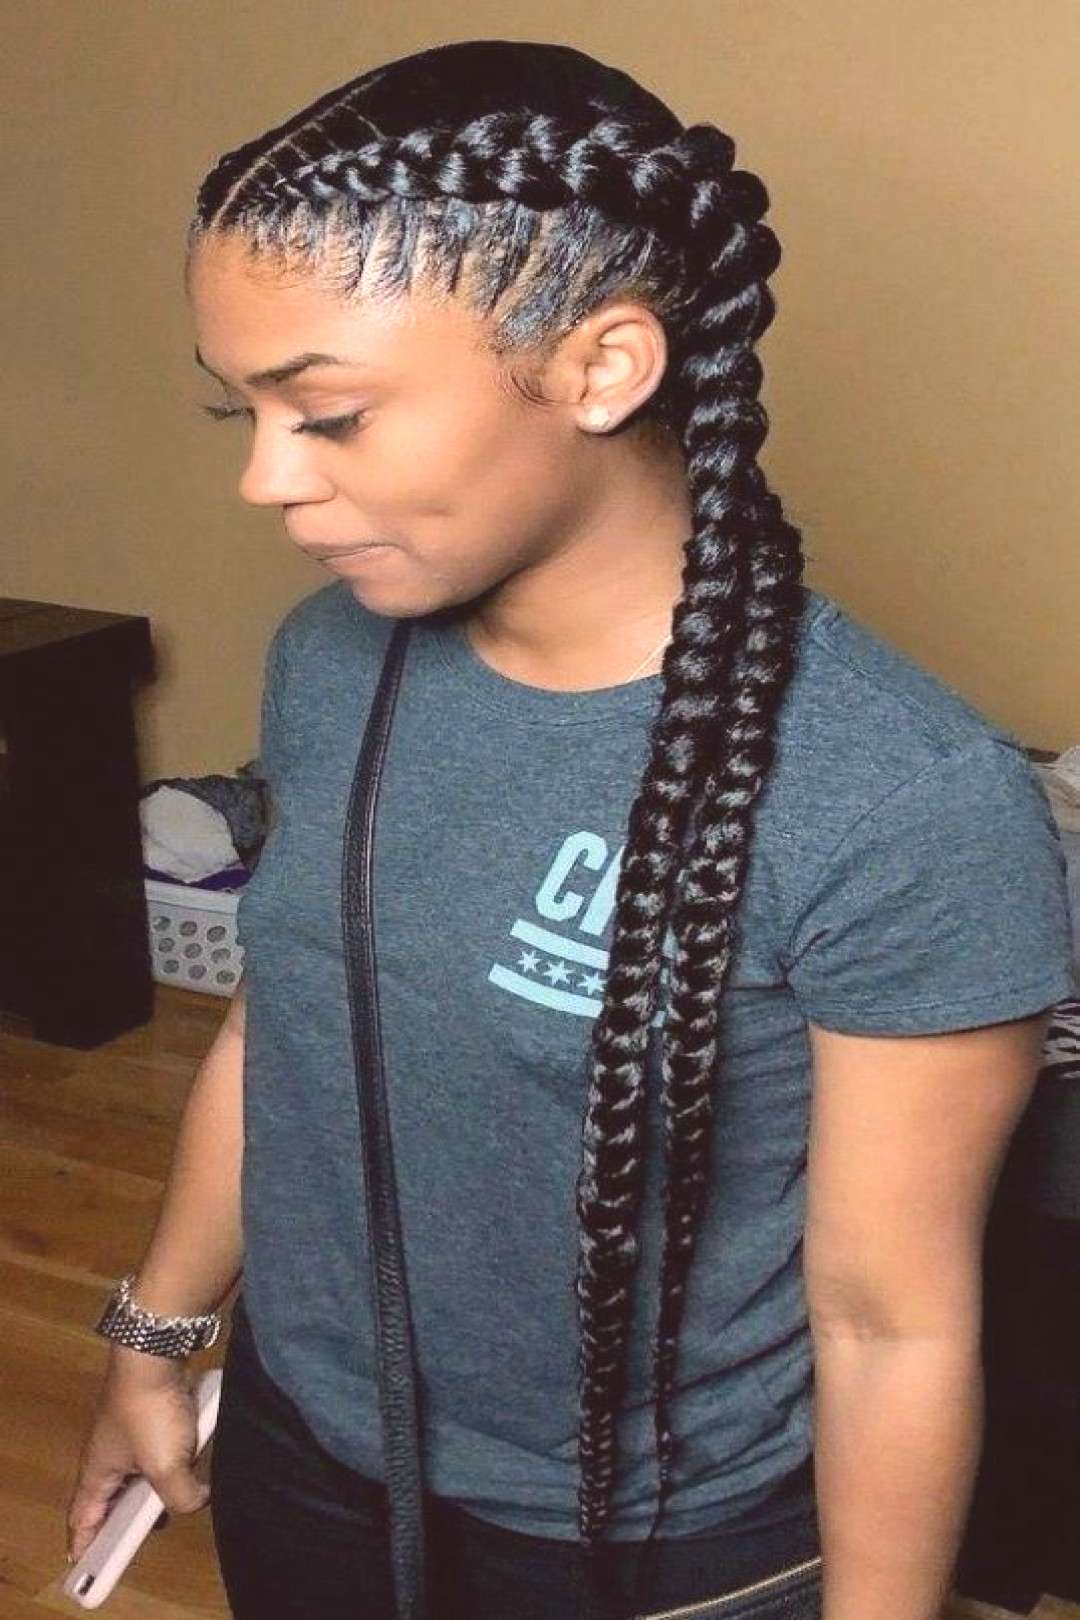 37 styles of braids from Ghana - a must for fashionable women 37 braid styles from Ghana – a mus